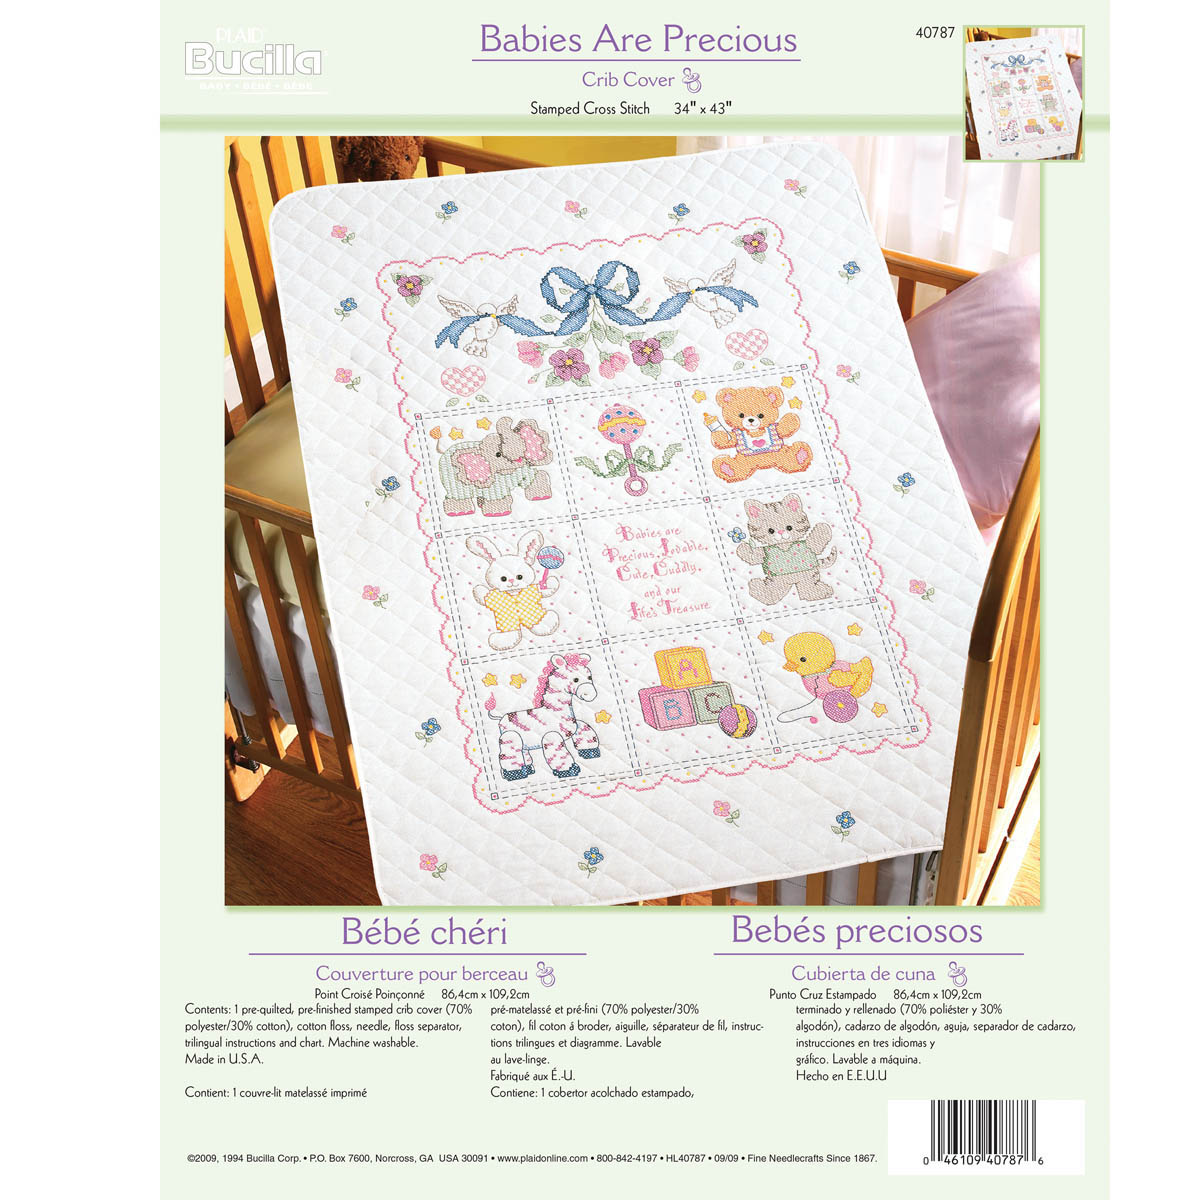 Bucilla ® Baby - Stamped Cross Stitch - Crib Ensembles - Babies Are Precious - Crib Cover Kit - 4078